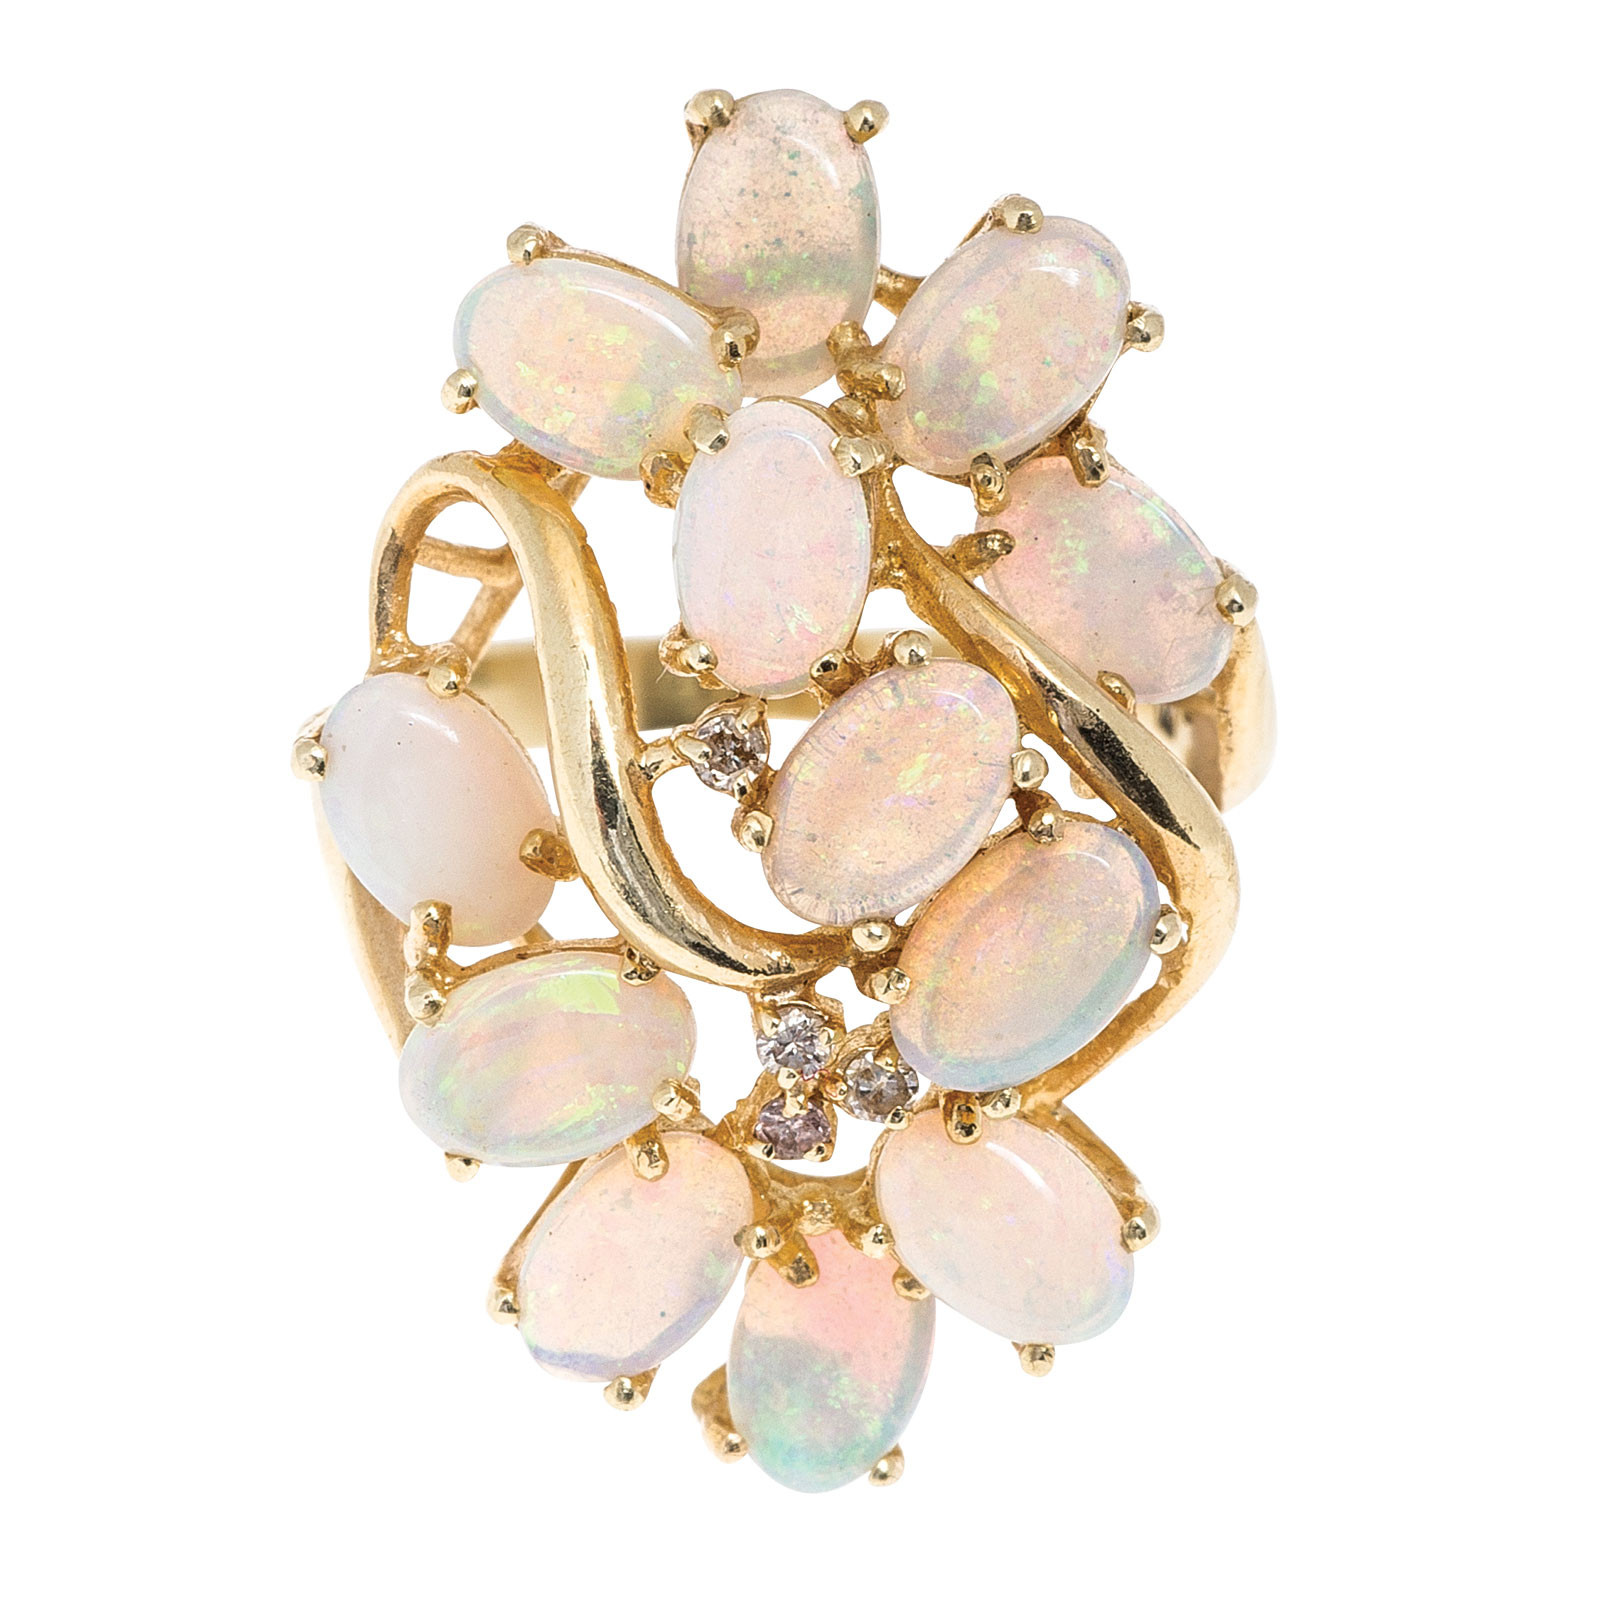 Vintage 3.62 CTW Opal & Diamond Ring